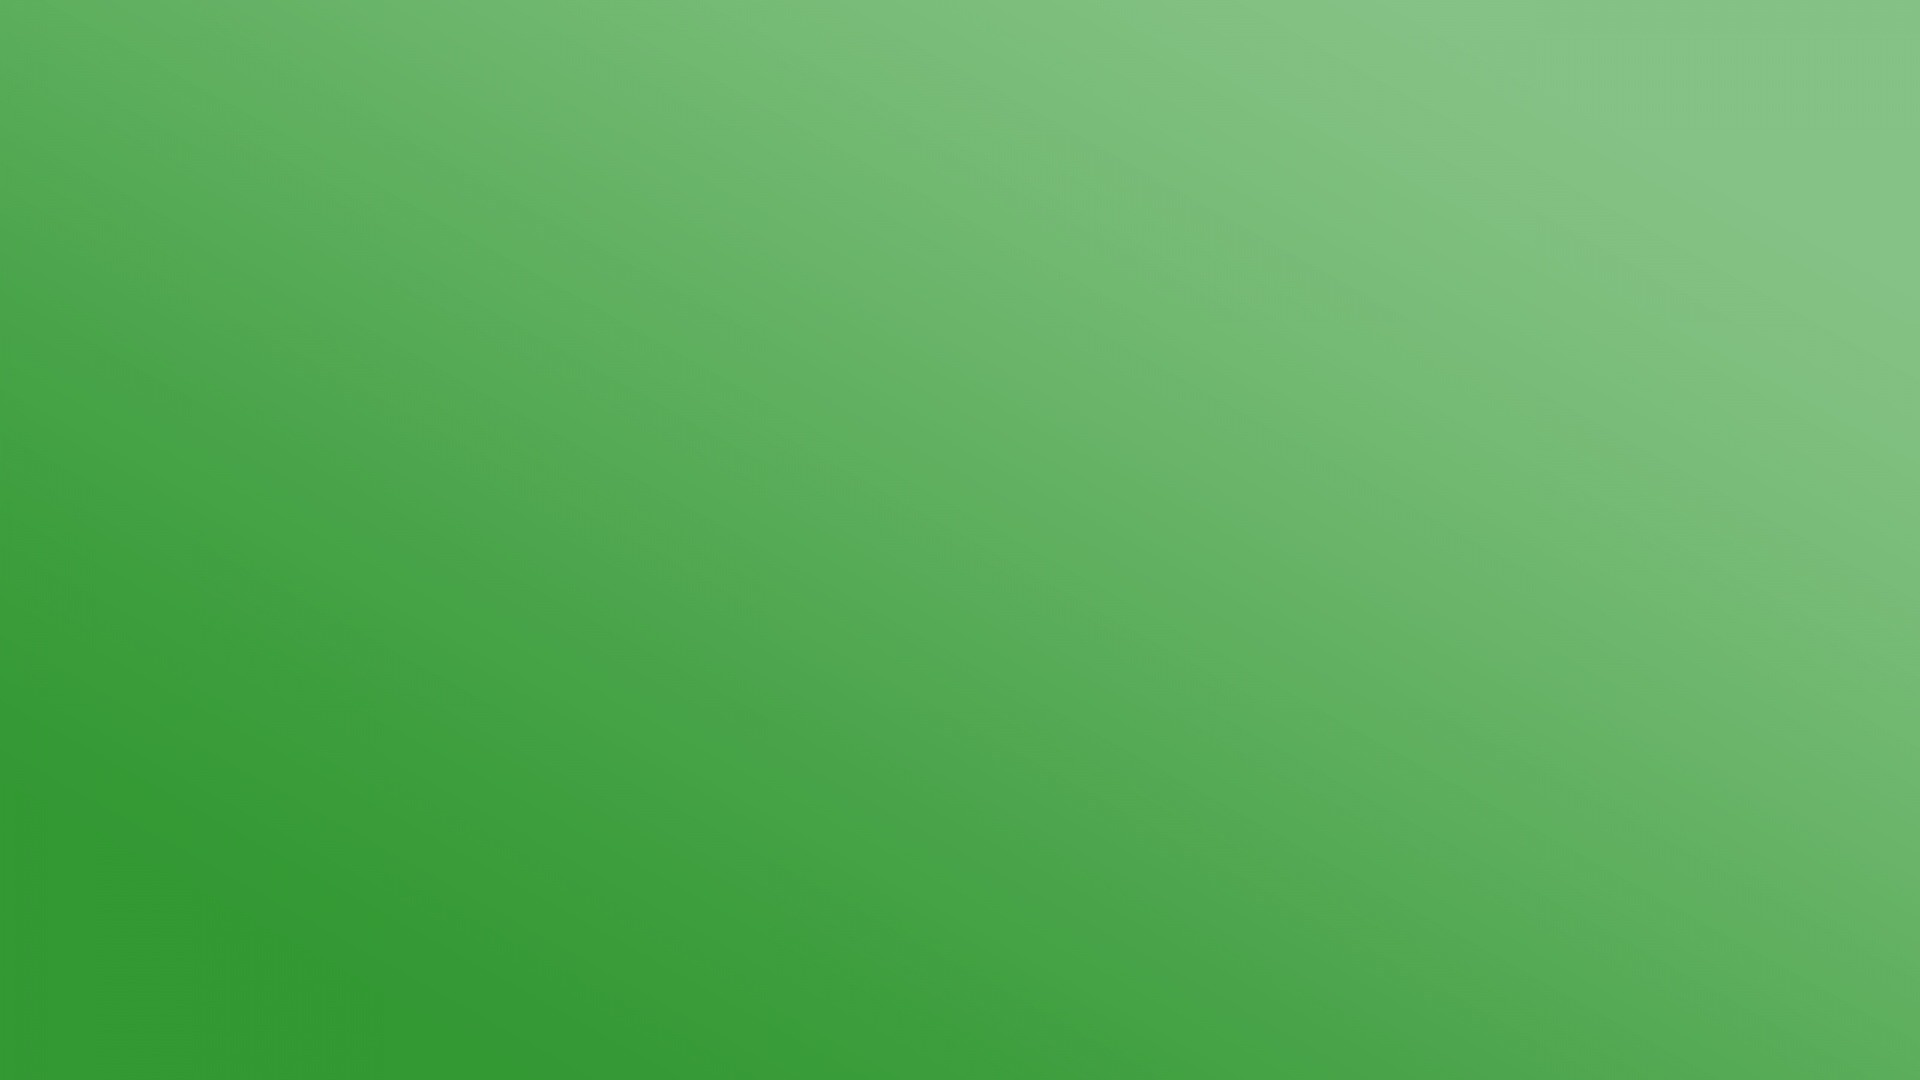 Simple Green Gradient. How to set wallpaper on your desktop?  Click the download link from above and set the wallpaper on the desktop  from your OS.